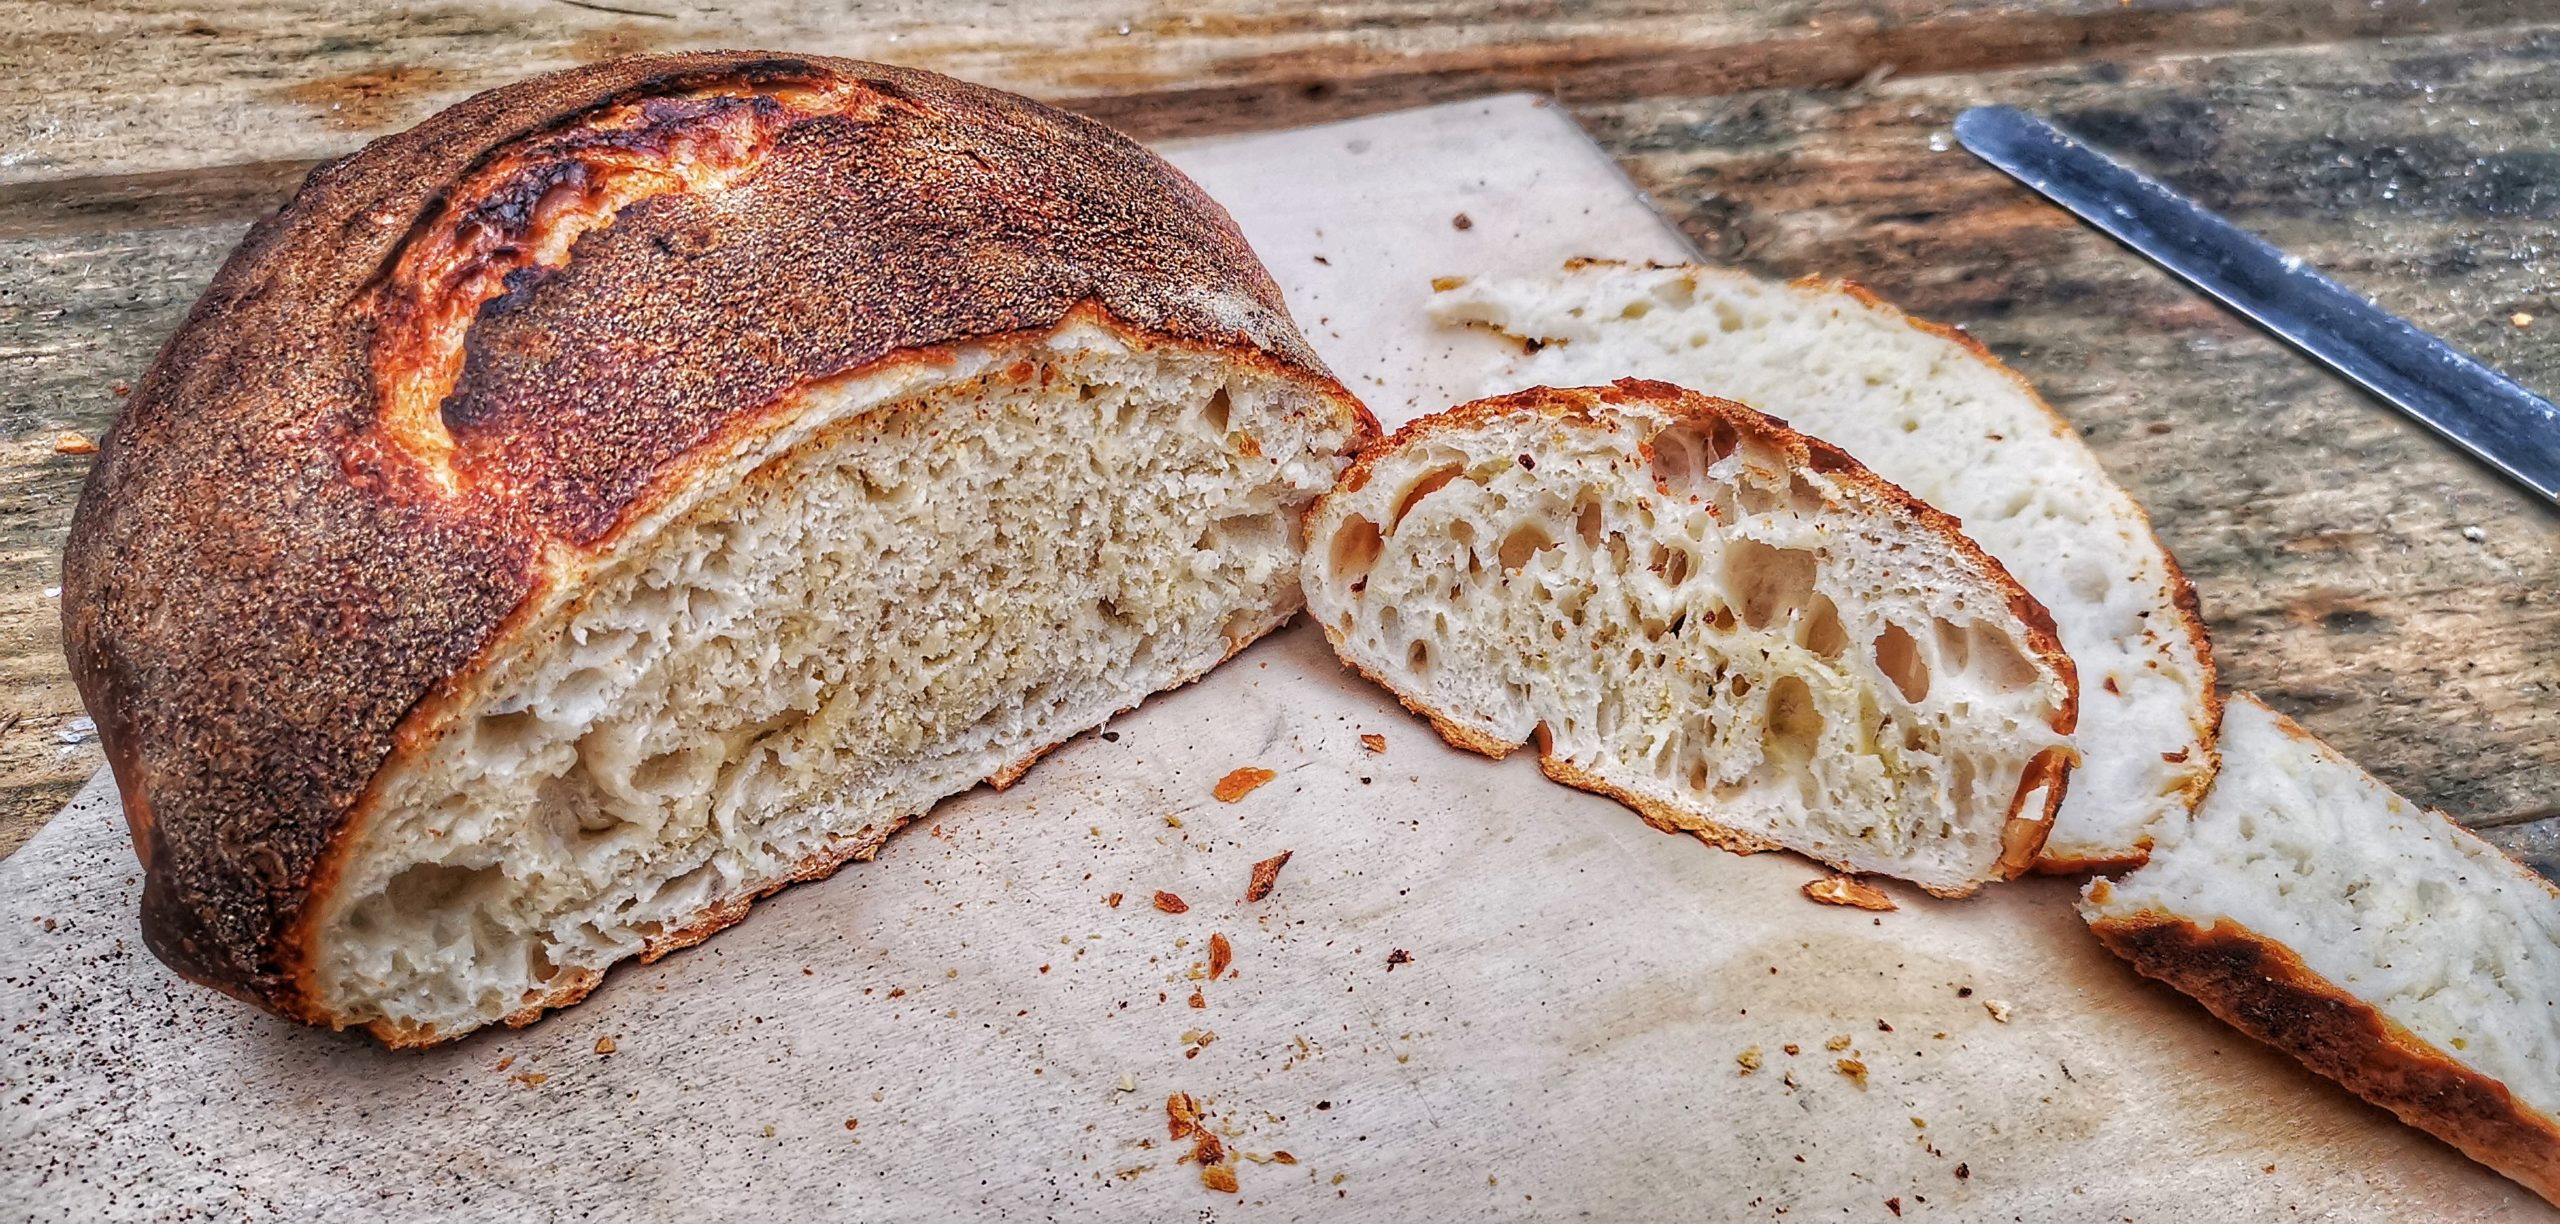 Wood Fired Bread – No Knead Dough